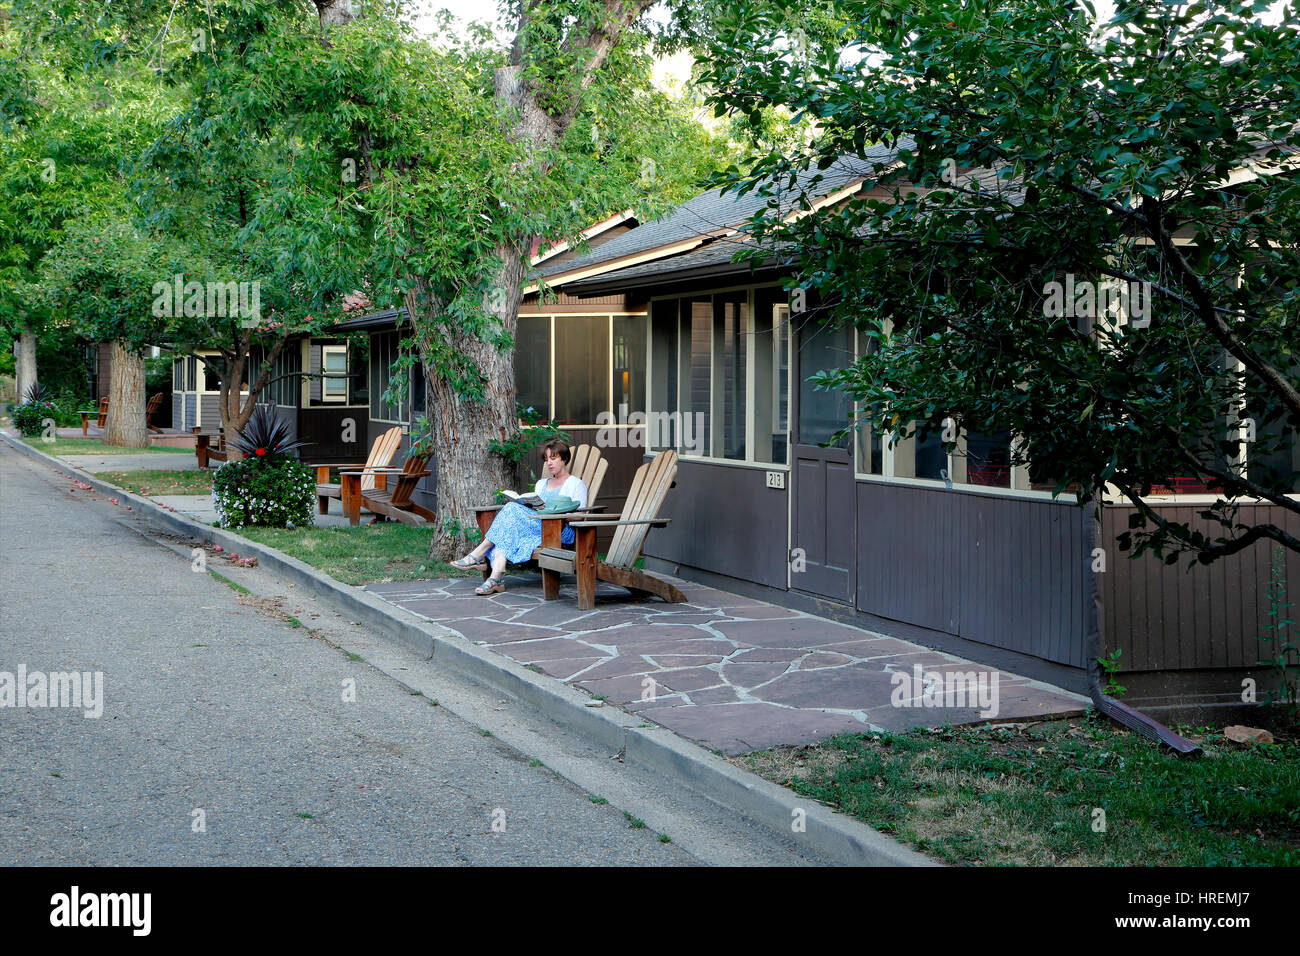 woman reading in front of cottages chautauqua park boulder stock rh alamy com chautauqua boulder house rentals chautauqua cabin rentals boulder colorado